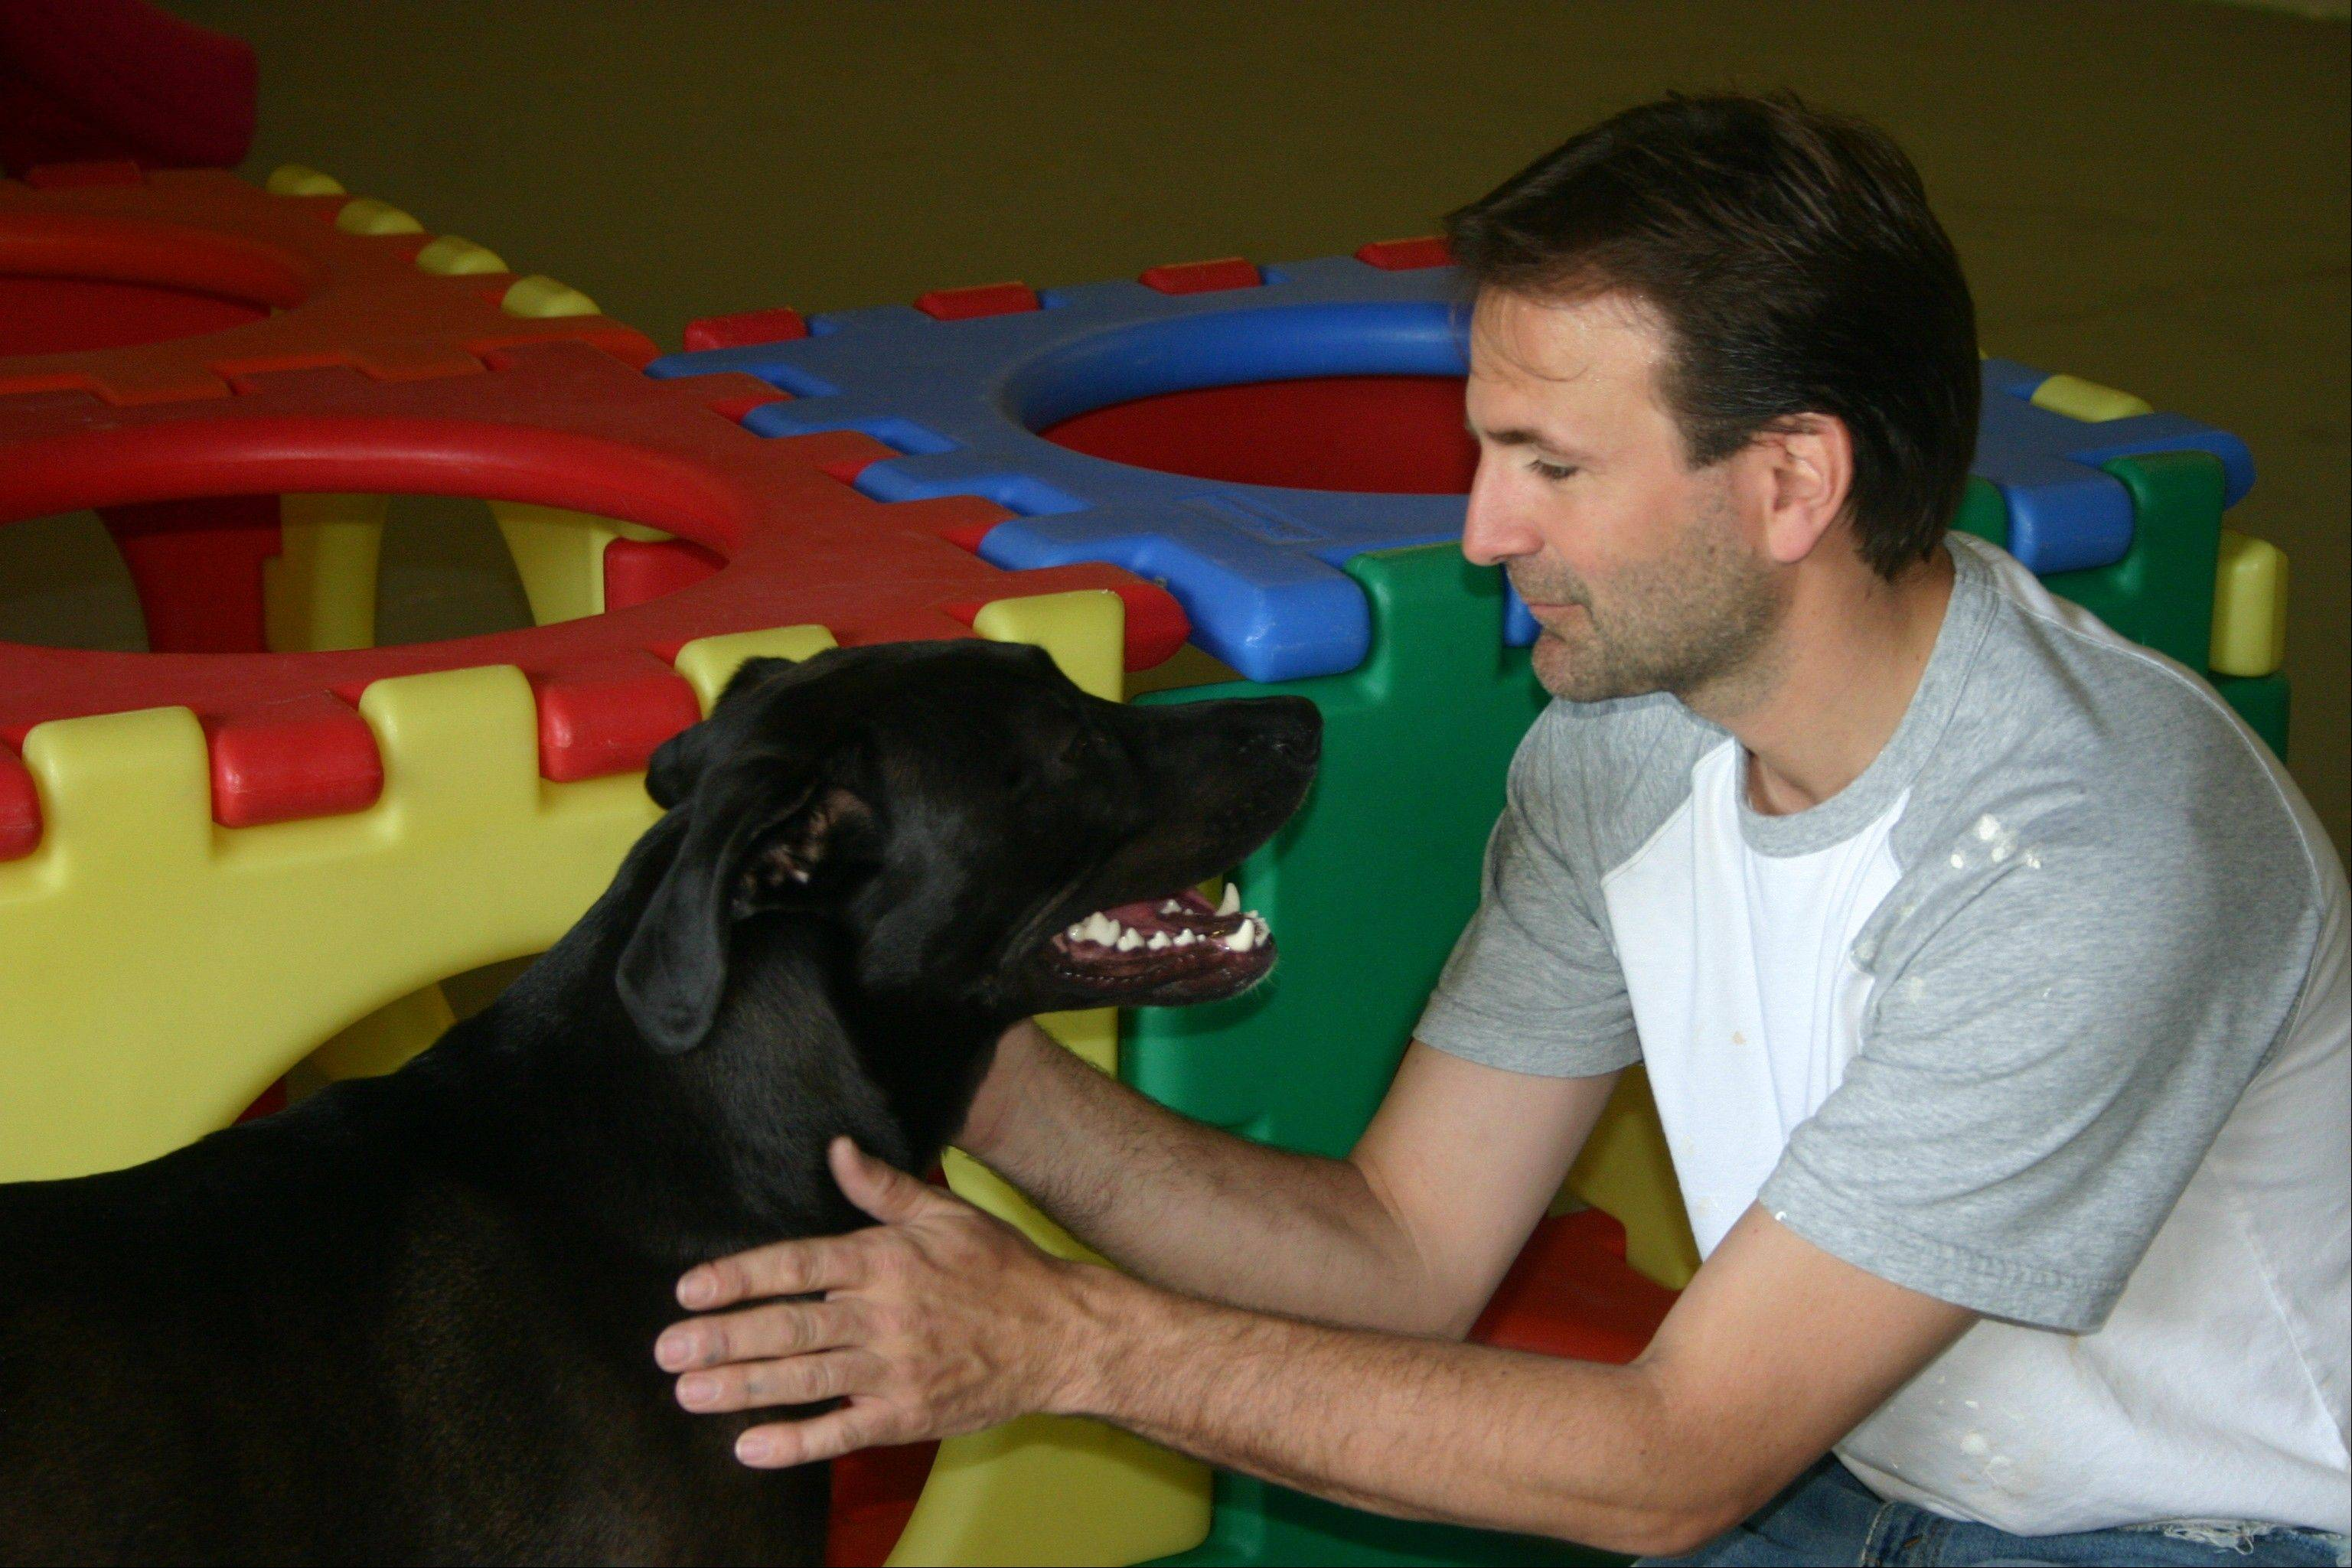 Mike Eckblade of Geneva has opened A New Dog, a dog day care and boarding facility in Geneva. It also features pet grooming by Jennifer Napolitano of Dirty Dog Gone Grooming.